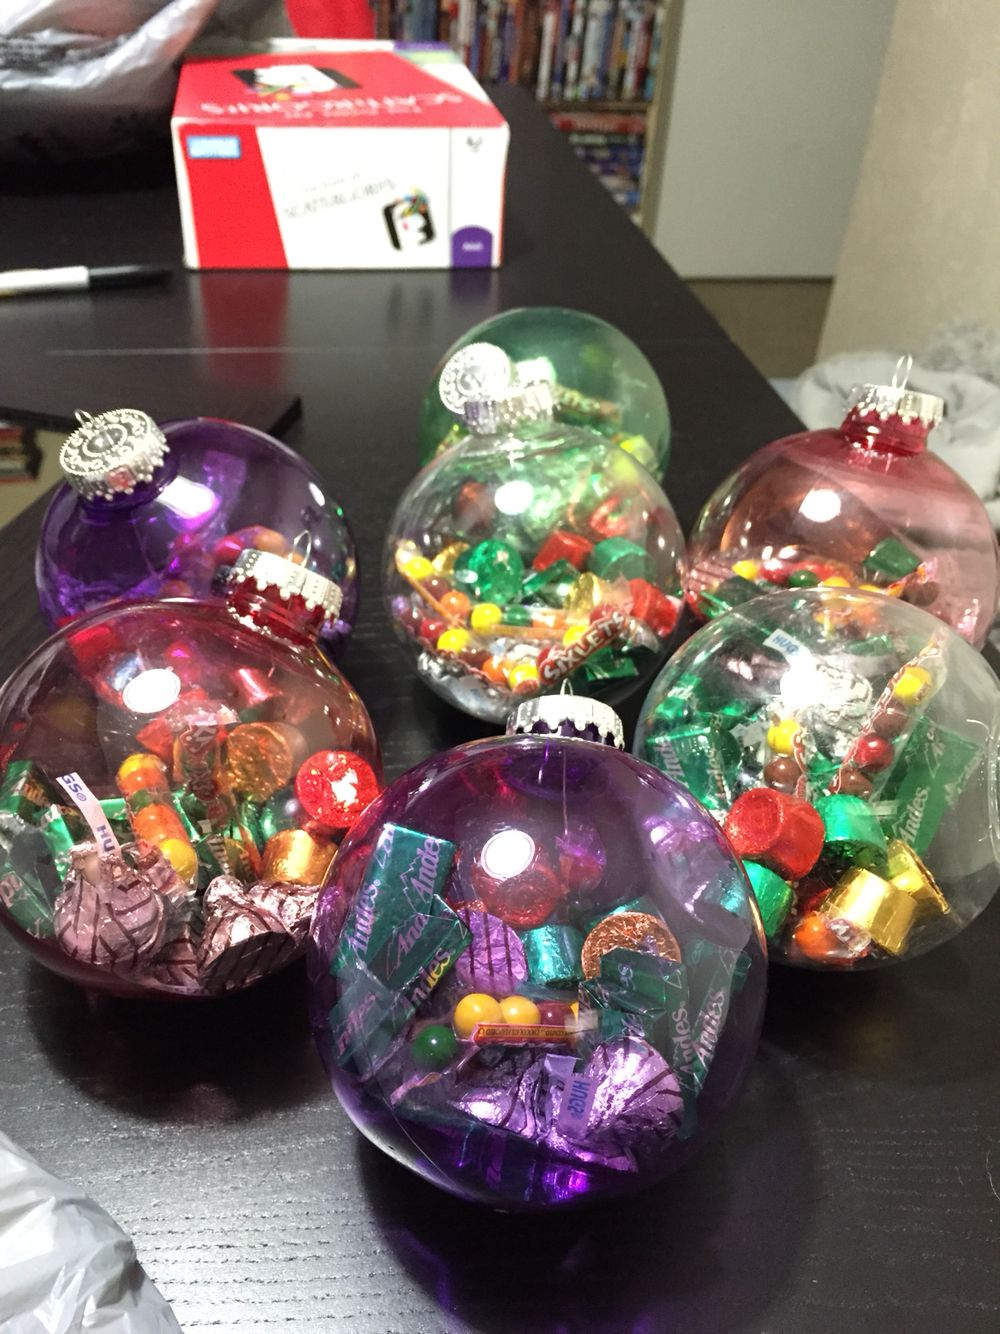 Really Cute Cheap Treat Bag Idea Great For Coworkers Teachers Friends Etc The Plastic Ornaments Cost 97 C2 A2 At Walmart And Then Just Add Small Candy